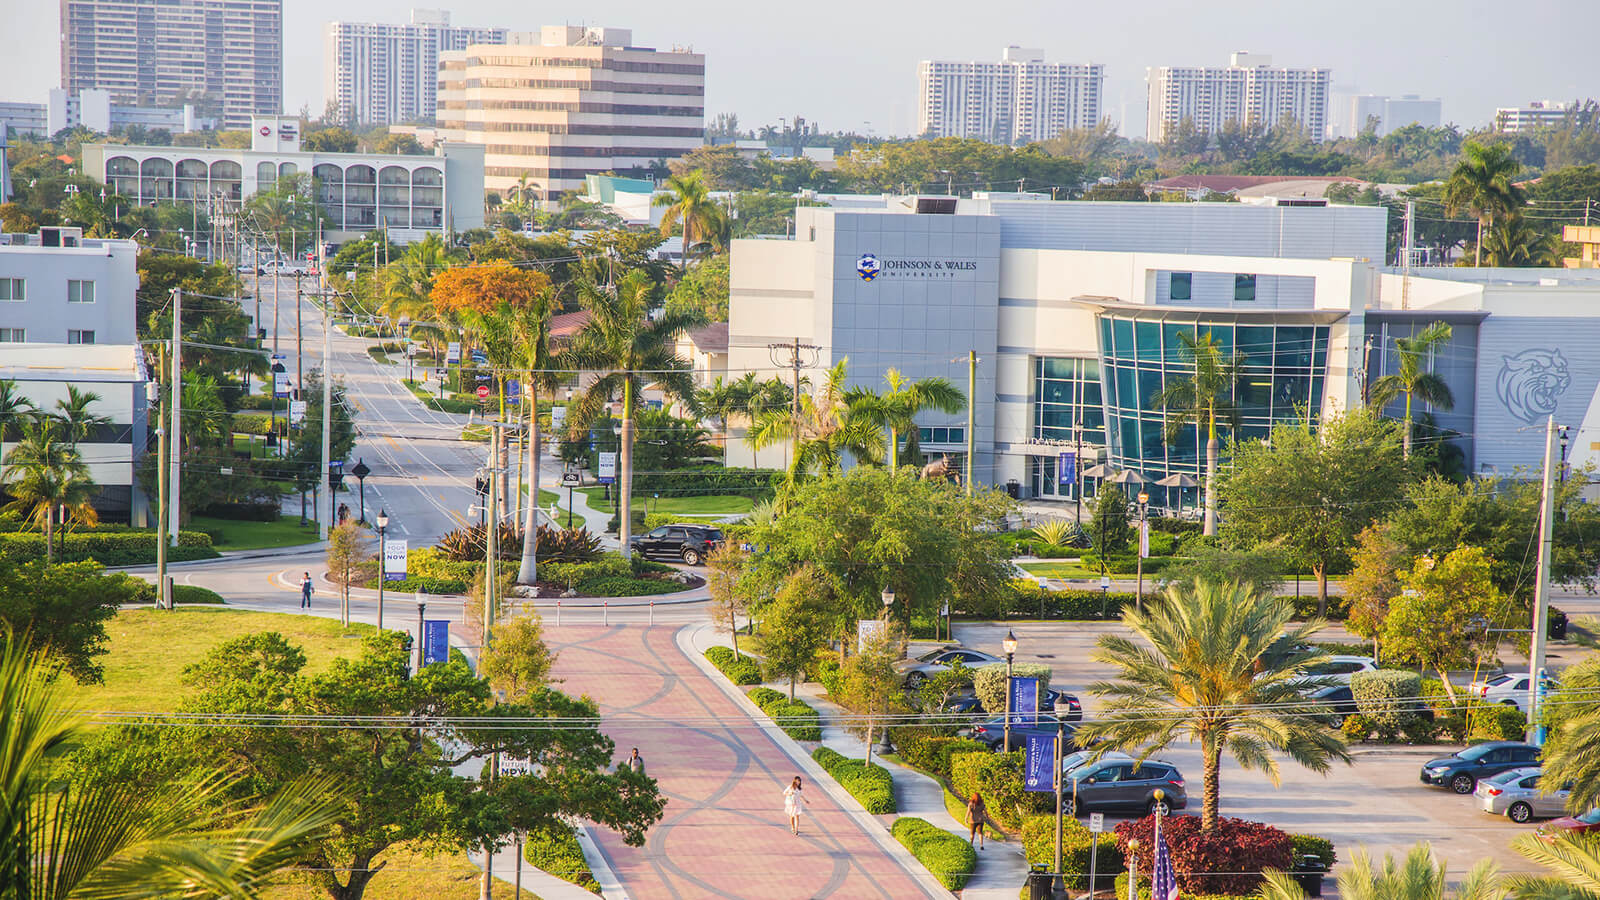 Johnson & Wales University-North Miami